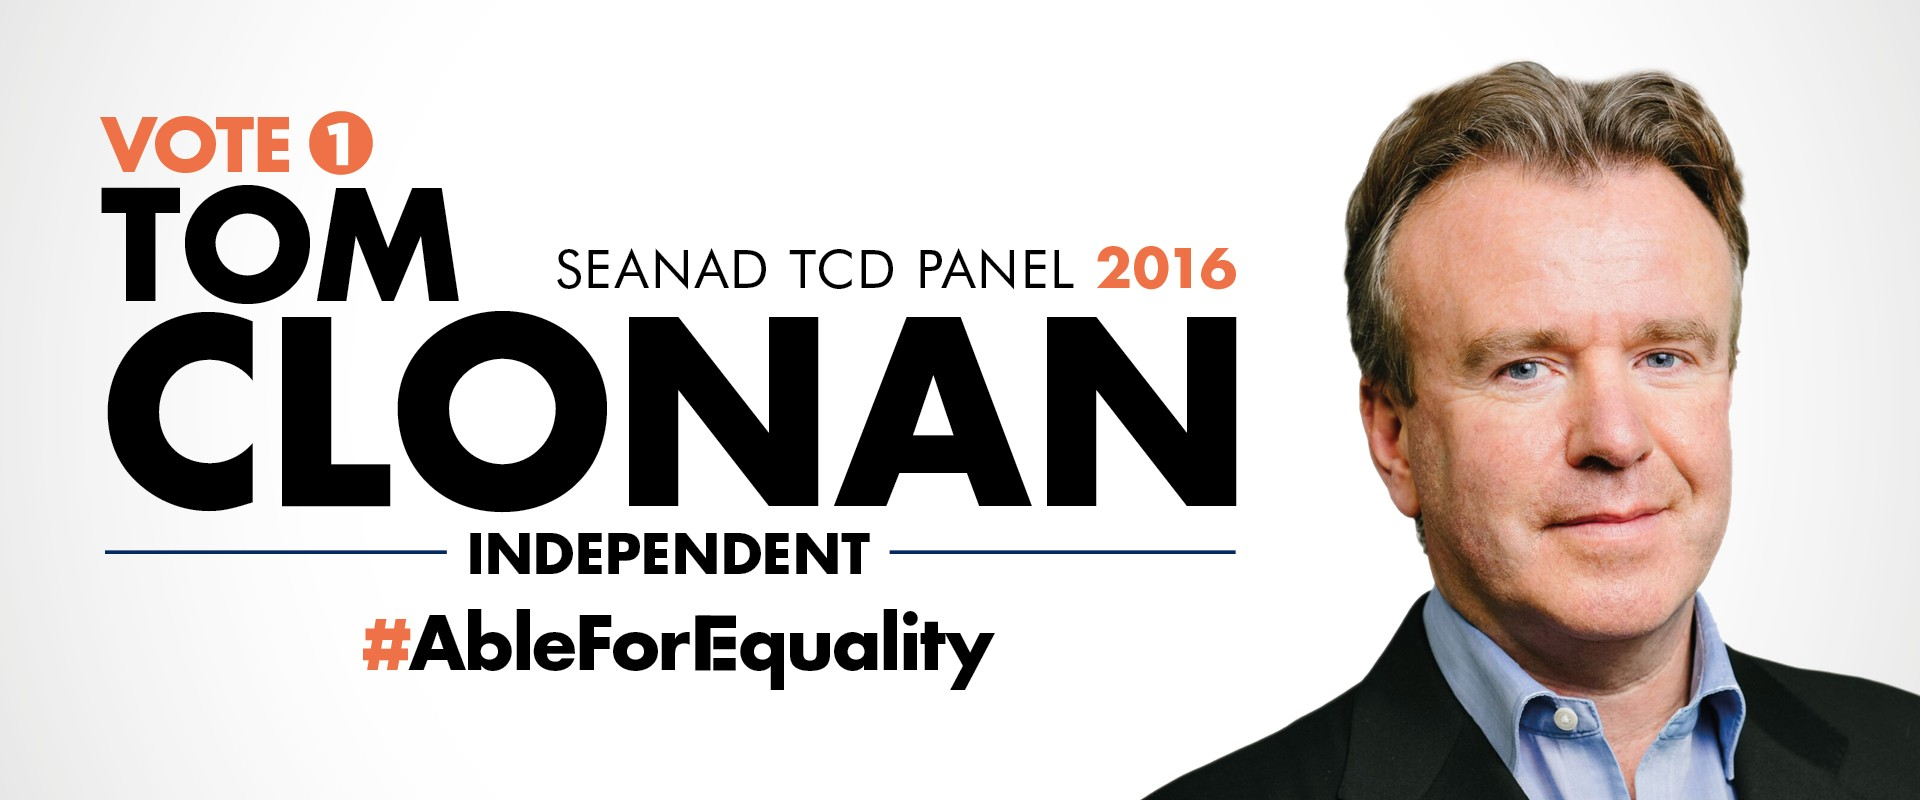 Tom Clonan Vote No.One